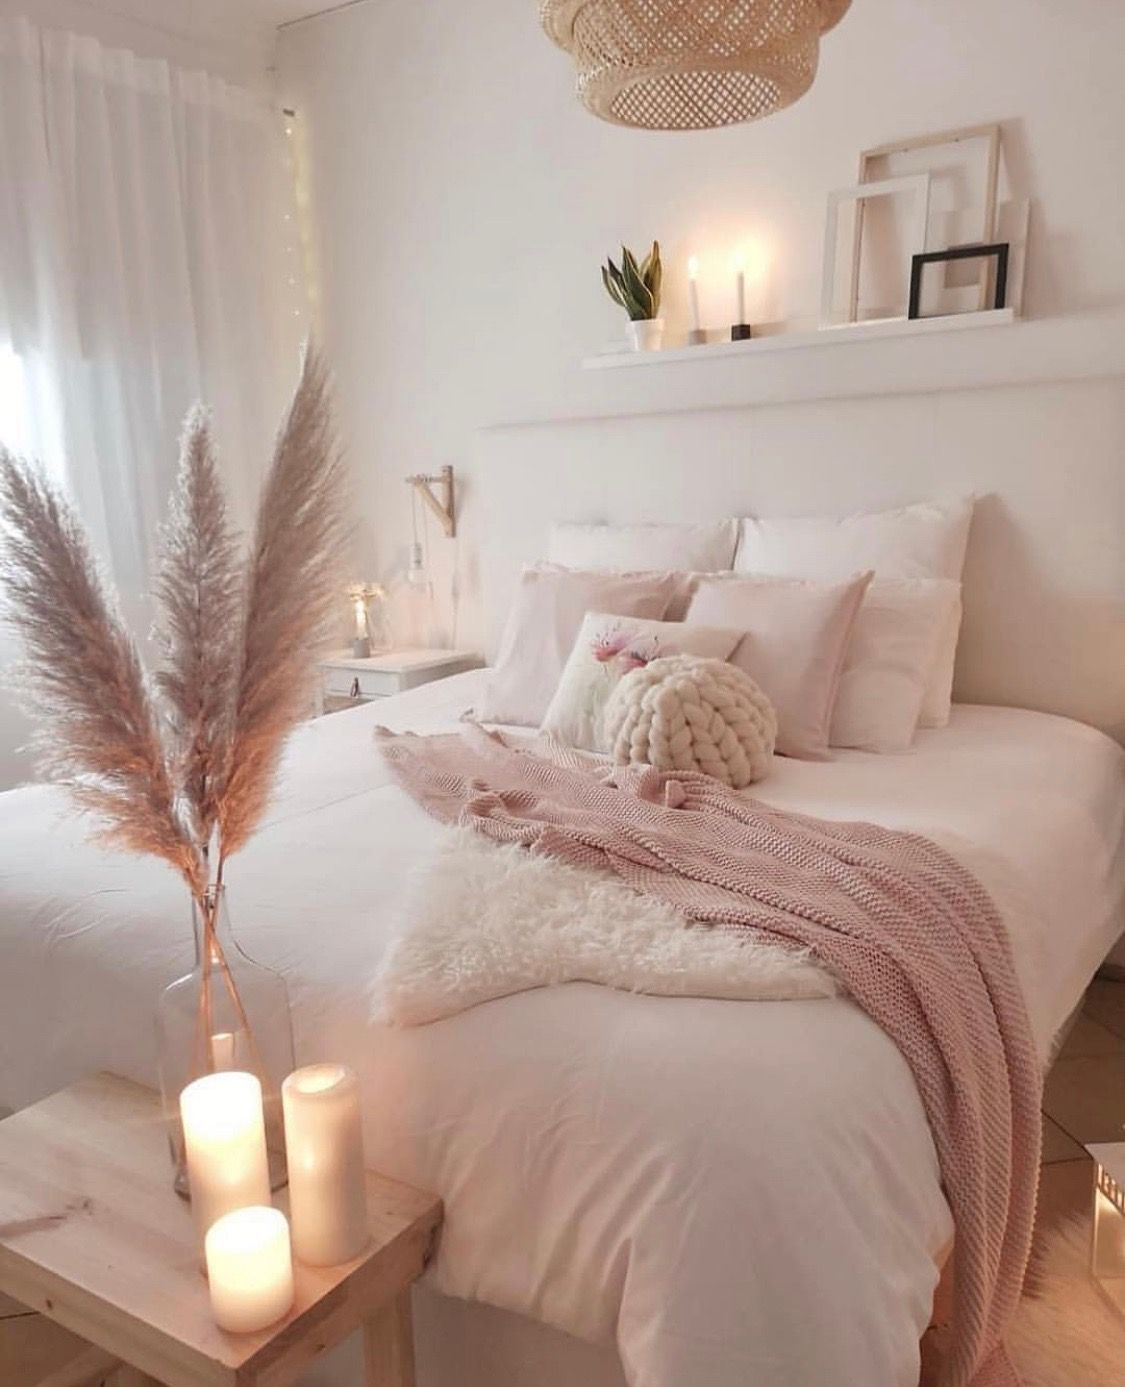 Elegant & Comfy Bedroom Decor Ideas